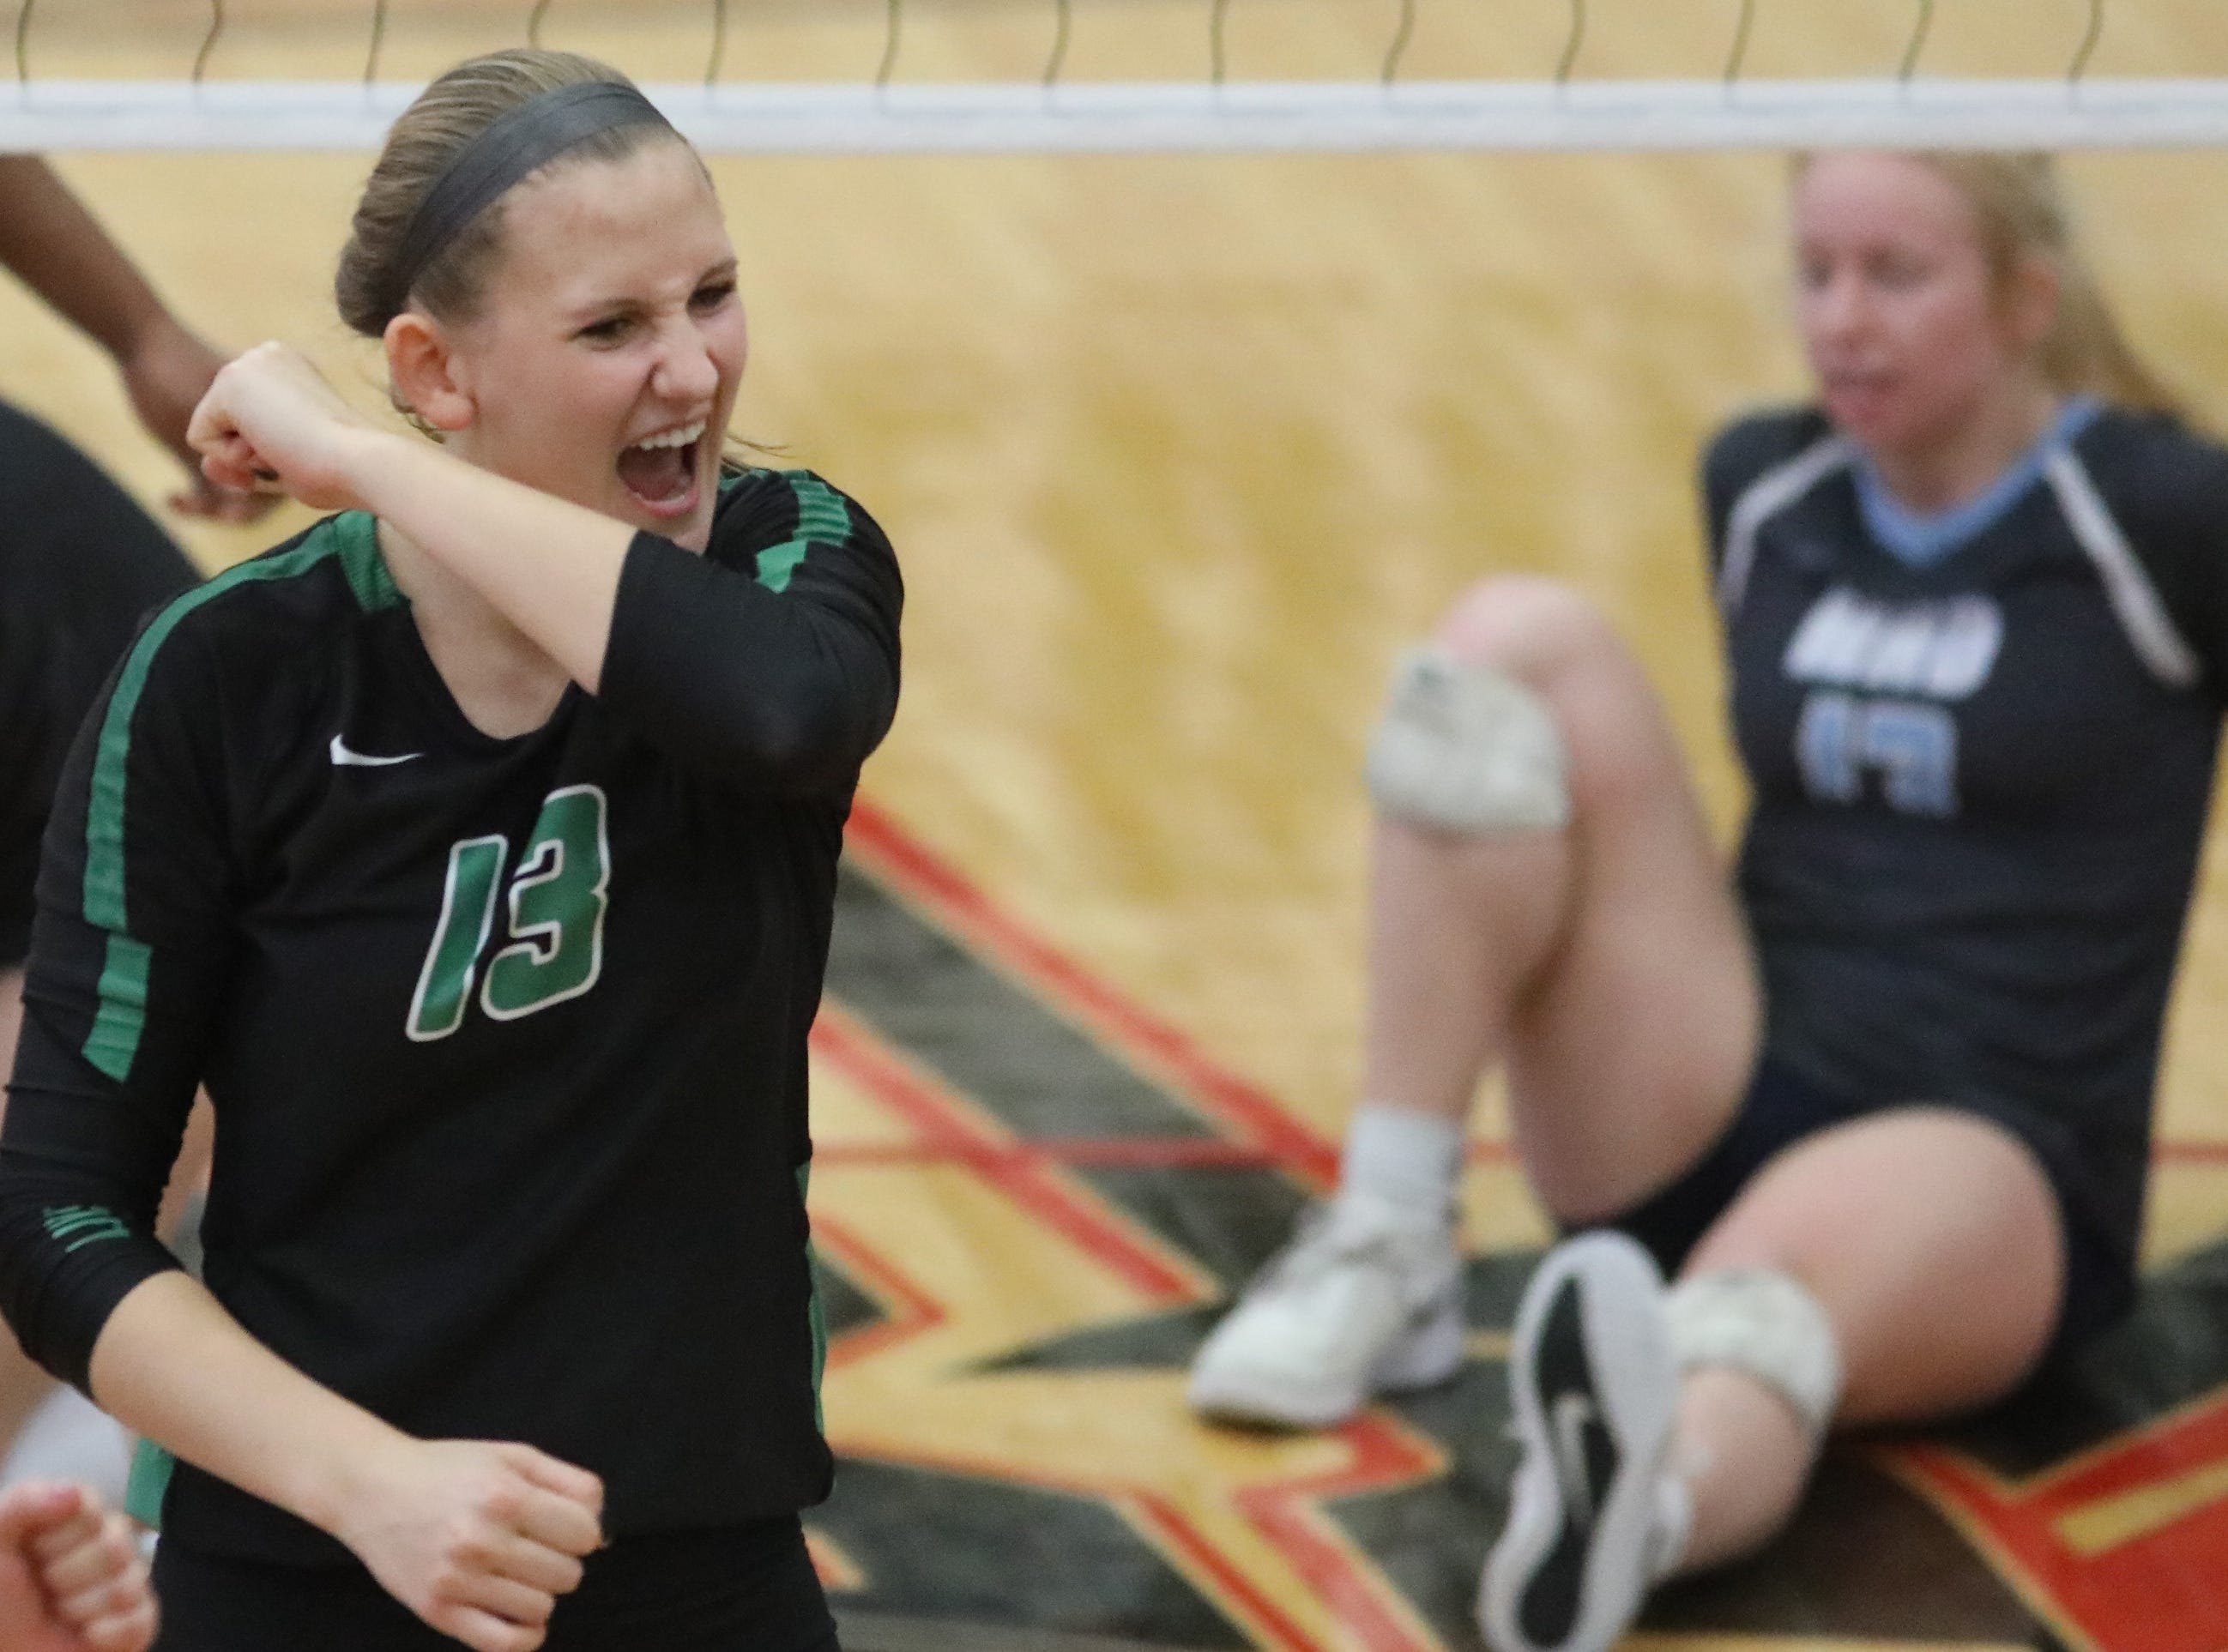 Ursuline player Julie Wilkins (13)  reacts during Lions win the regional championship over Mount Notre Dame. Saturday, Nov. 3, 2018.